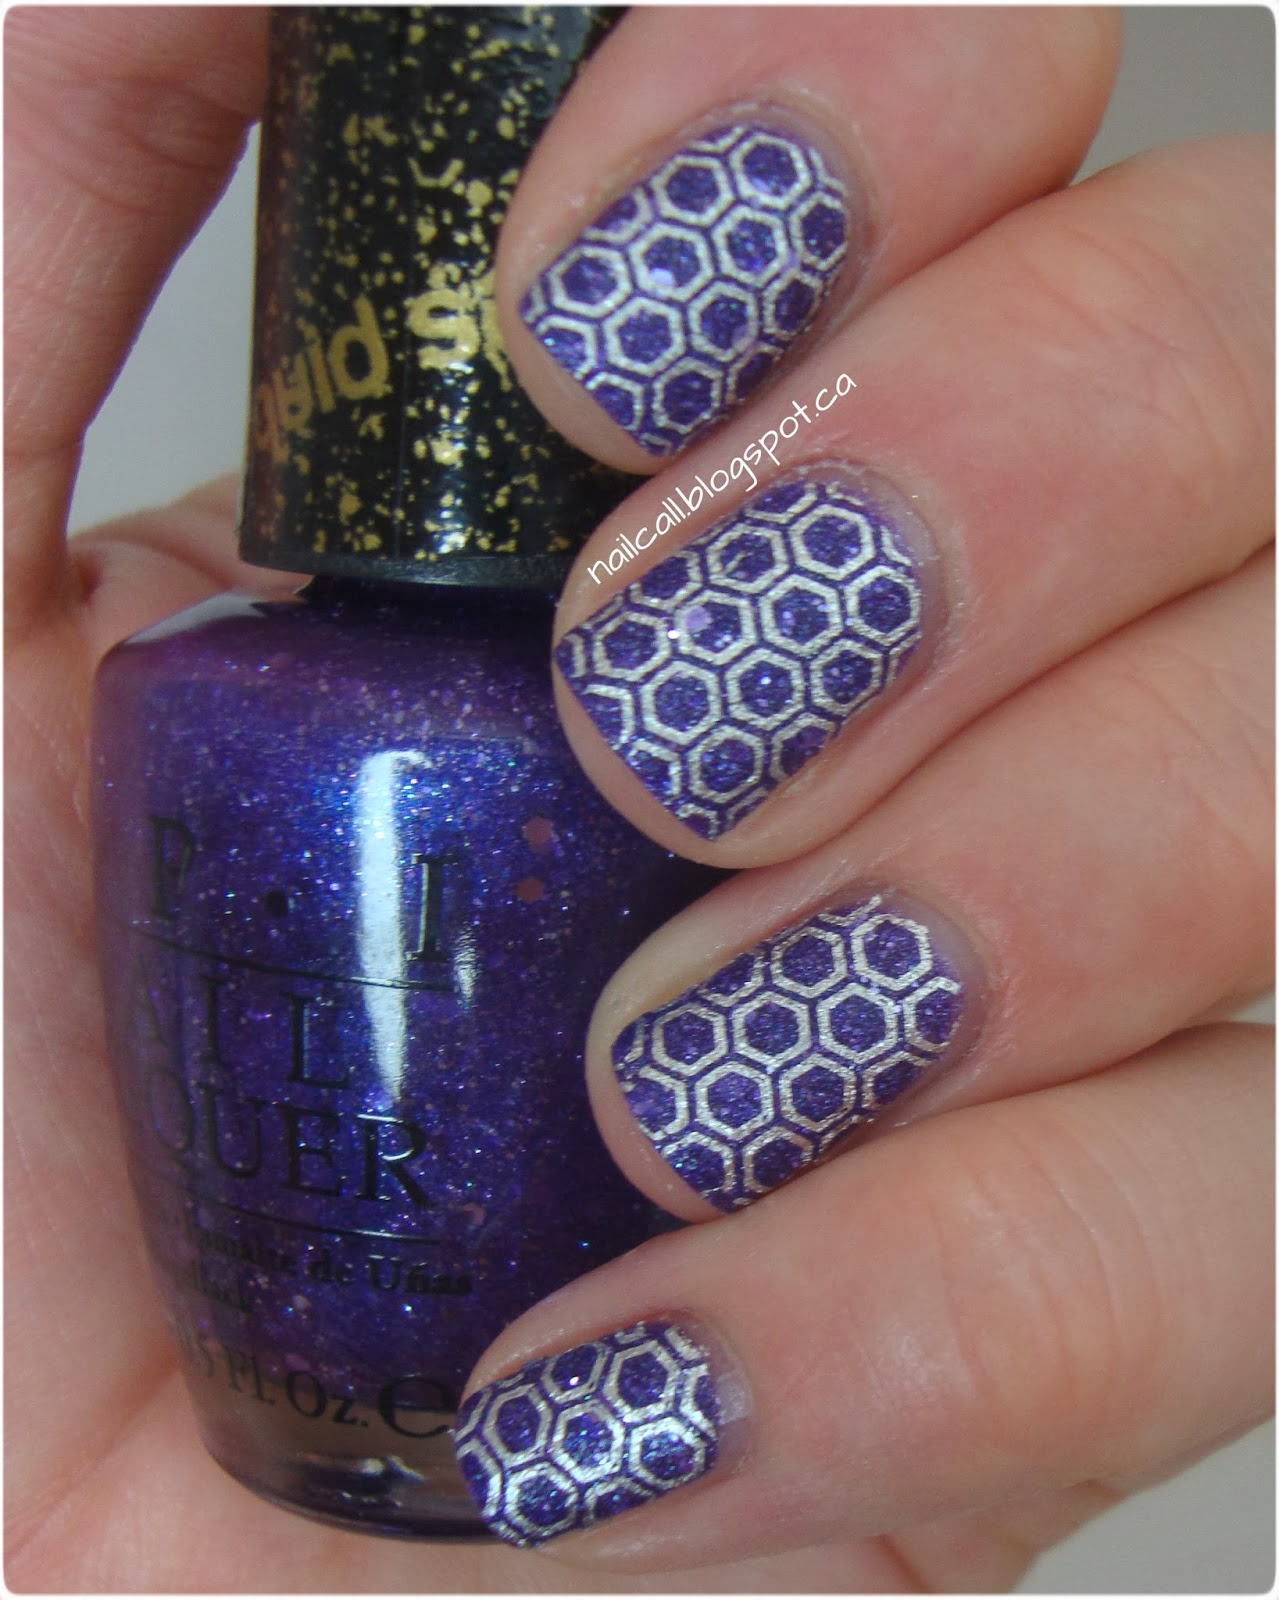 OPI Can't Let Go Stamped with BM-422